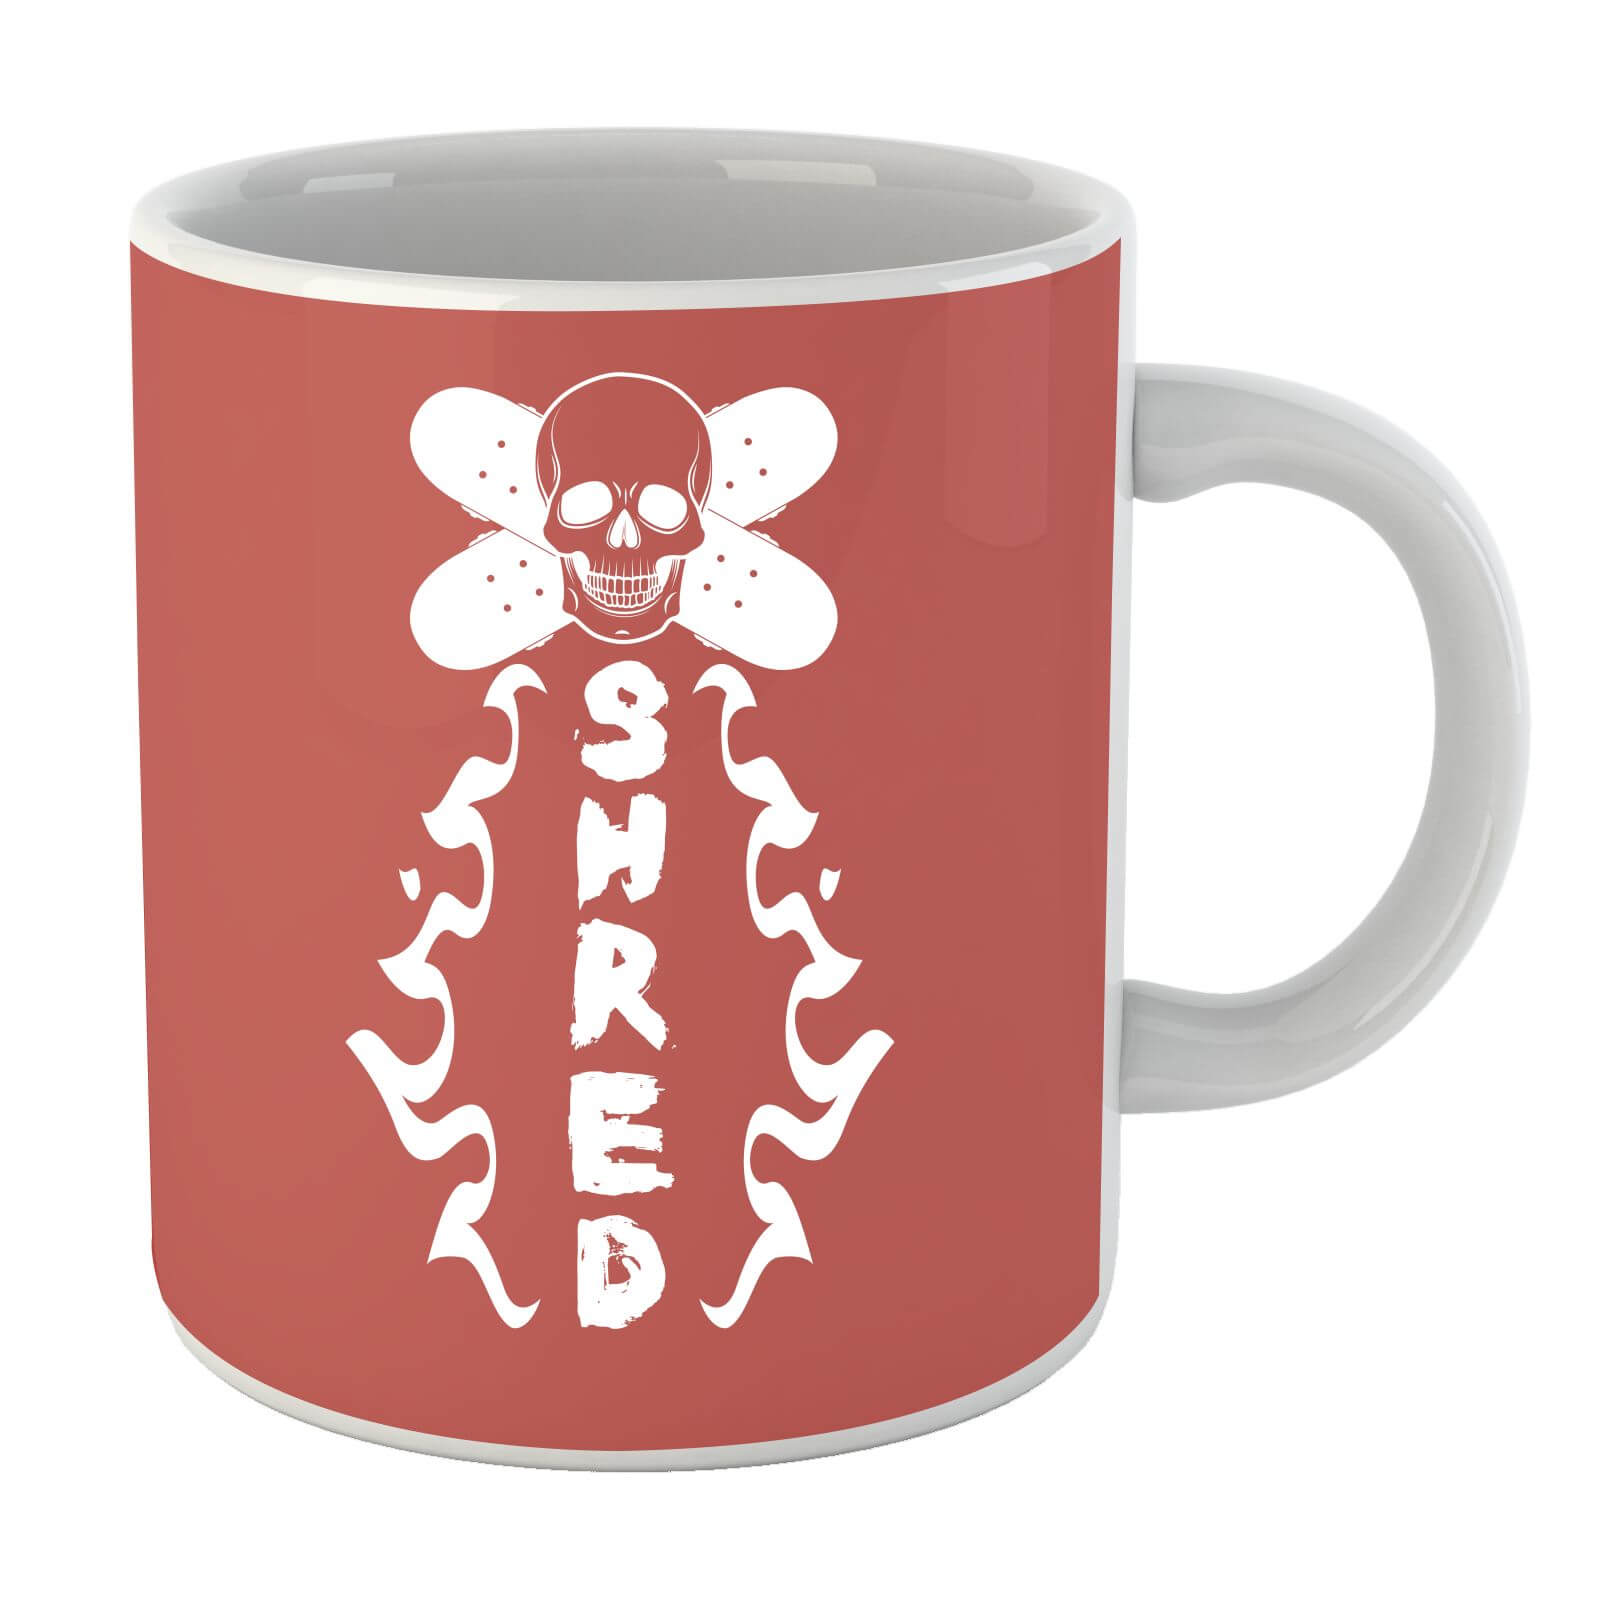 Shred Skateboards Mug